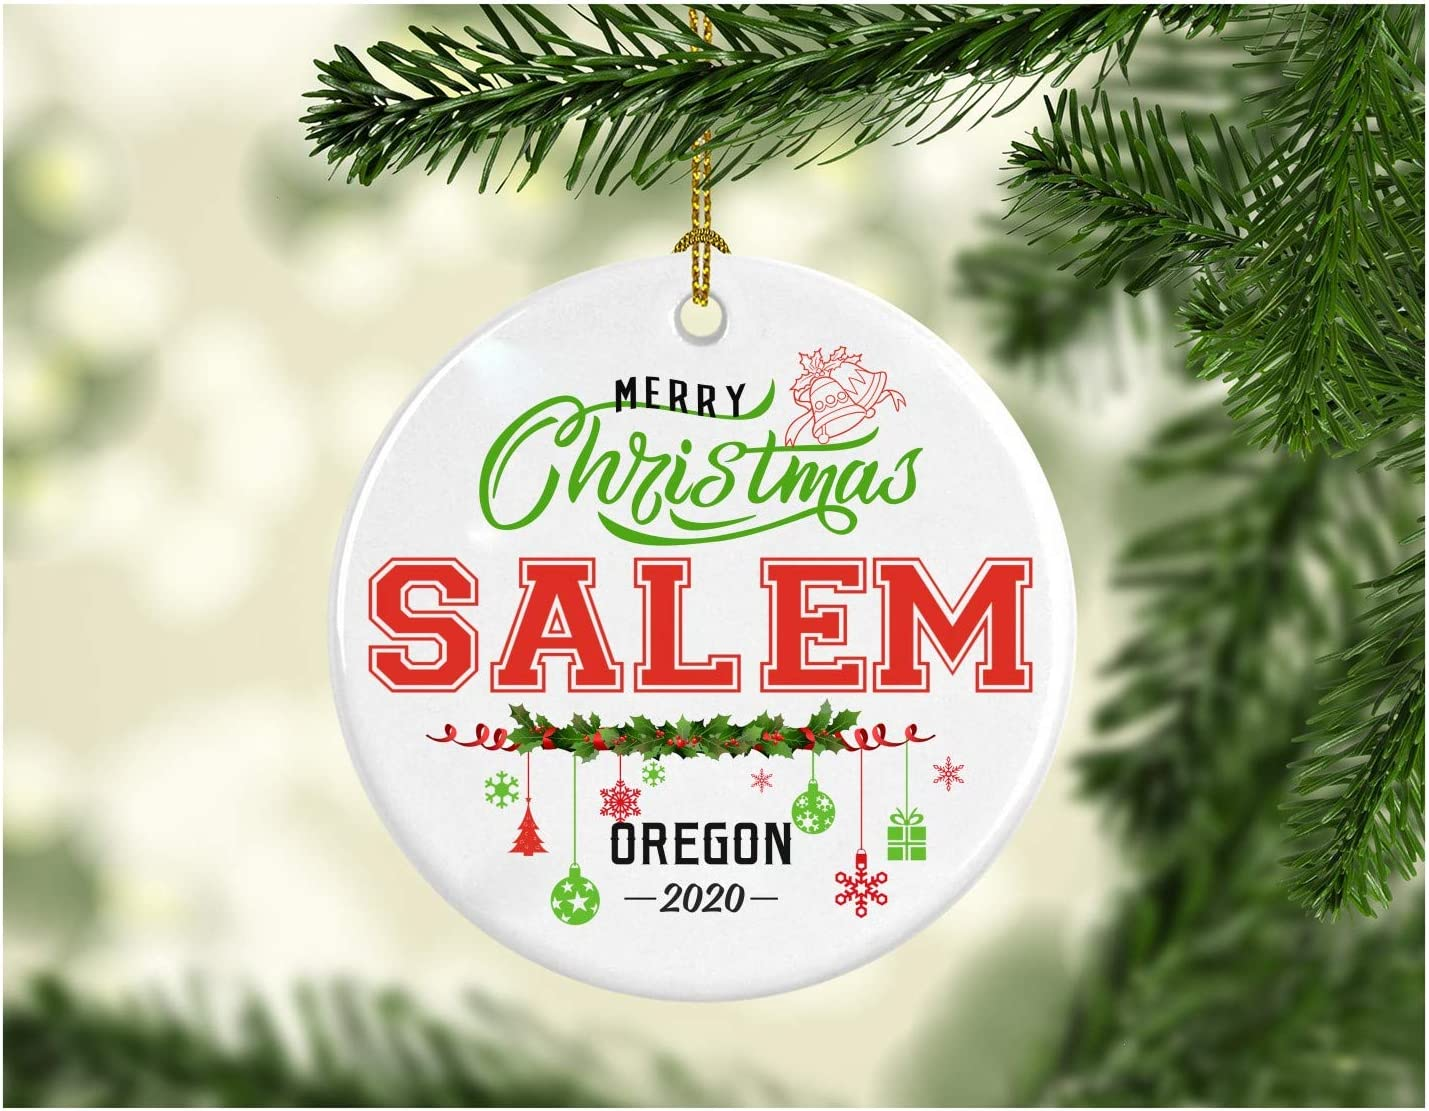 Christmas Decorations Tree Ornament - Gifts Hometown State - Merry Christmas Salem Oregon 2020 - Gift for Family Rustic 1St Xmas Tree in Our New Home 3 Inches White